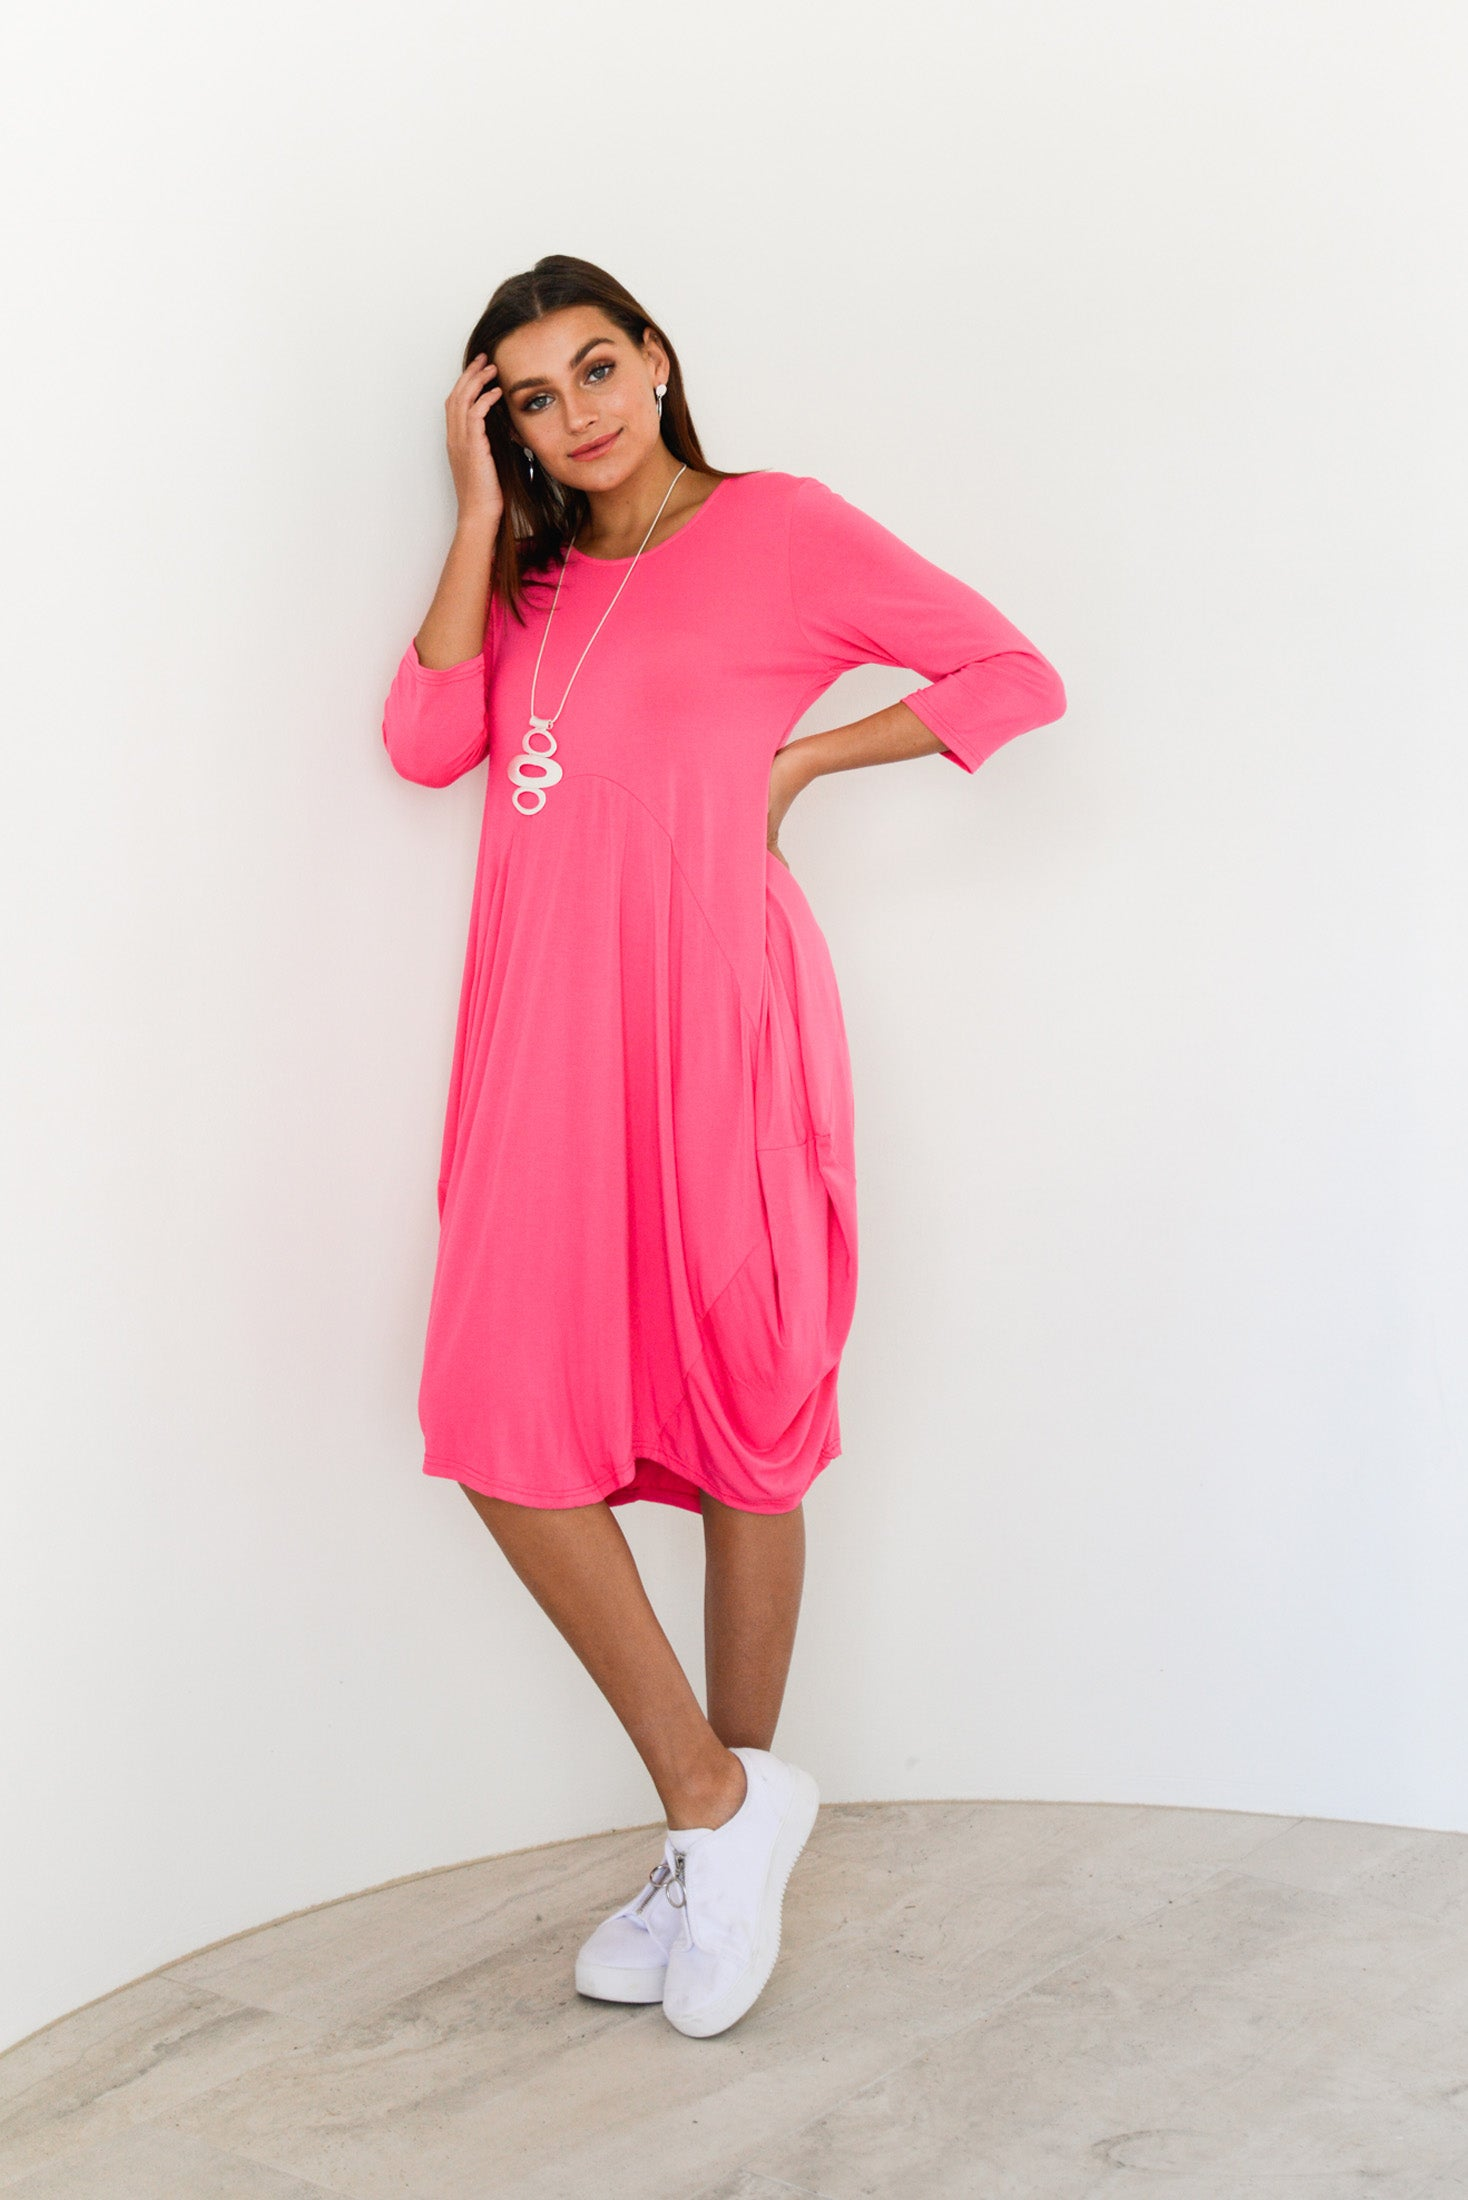 Ayla Pink Bamboo Dress - Blue Bungalow